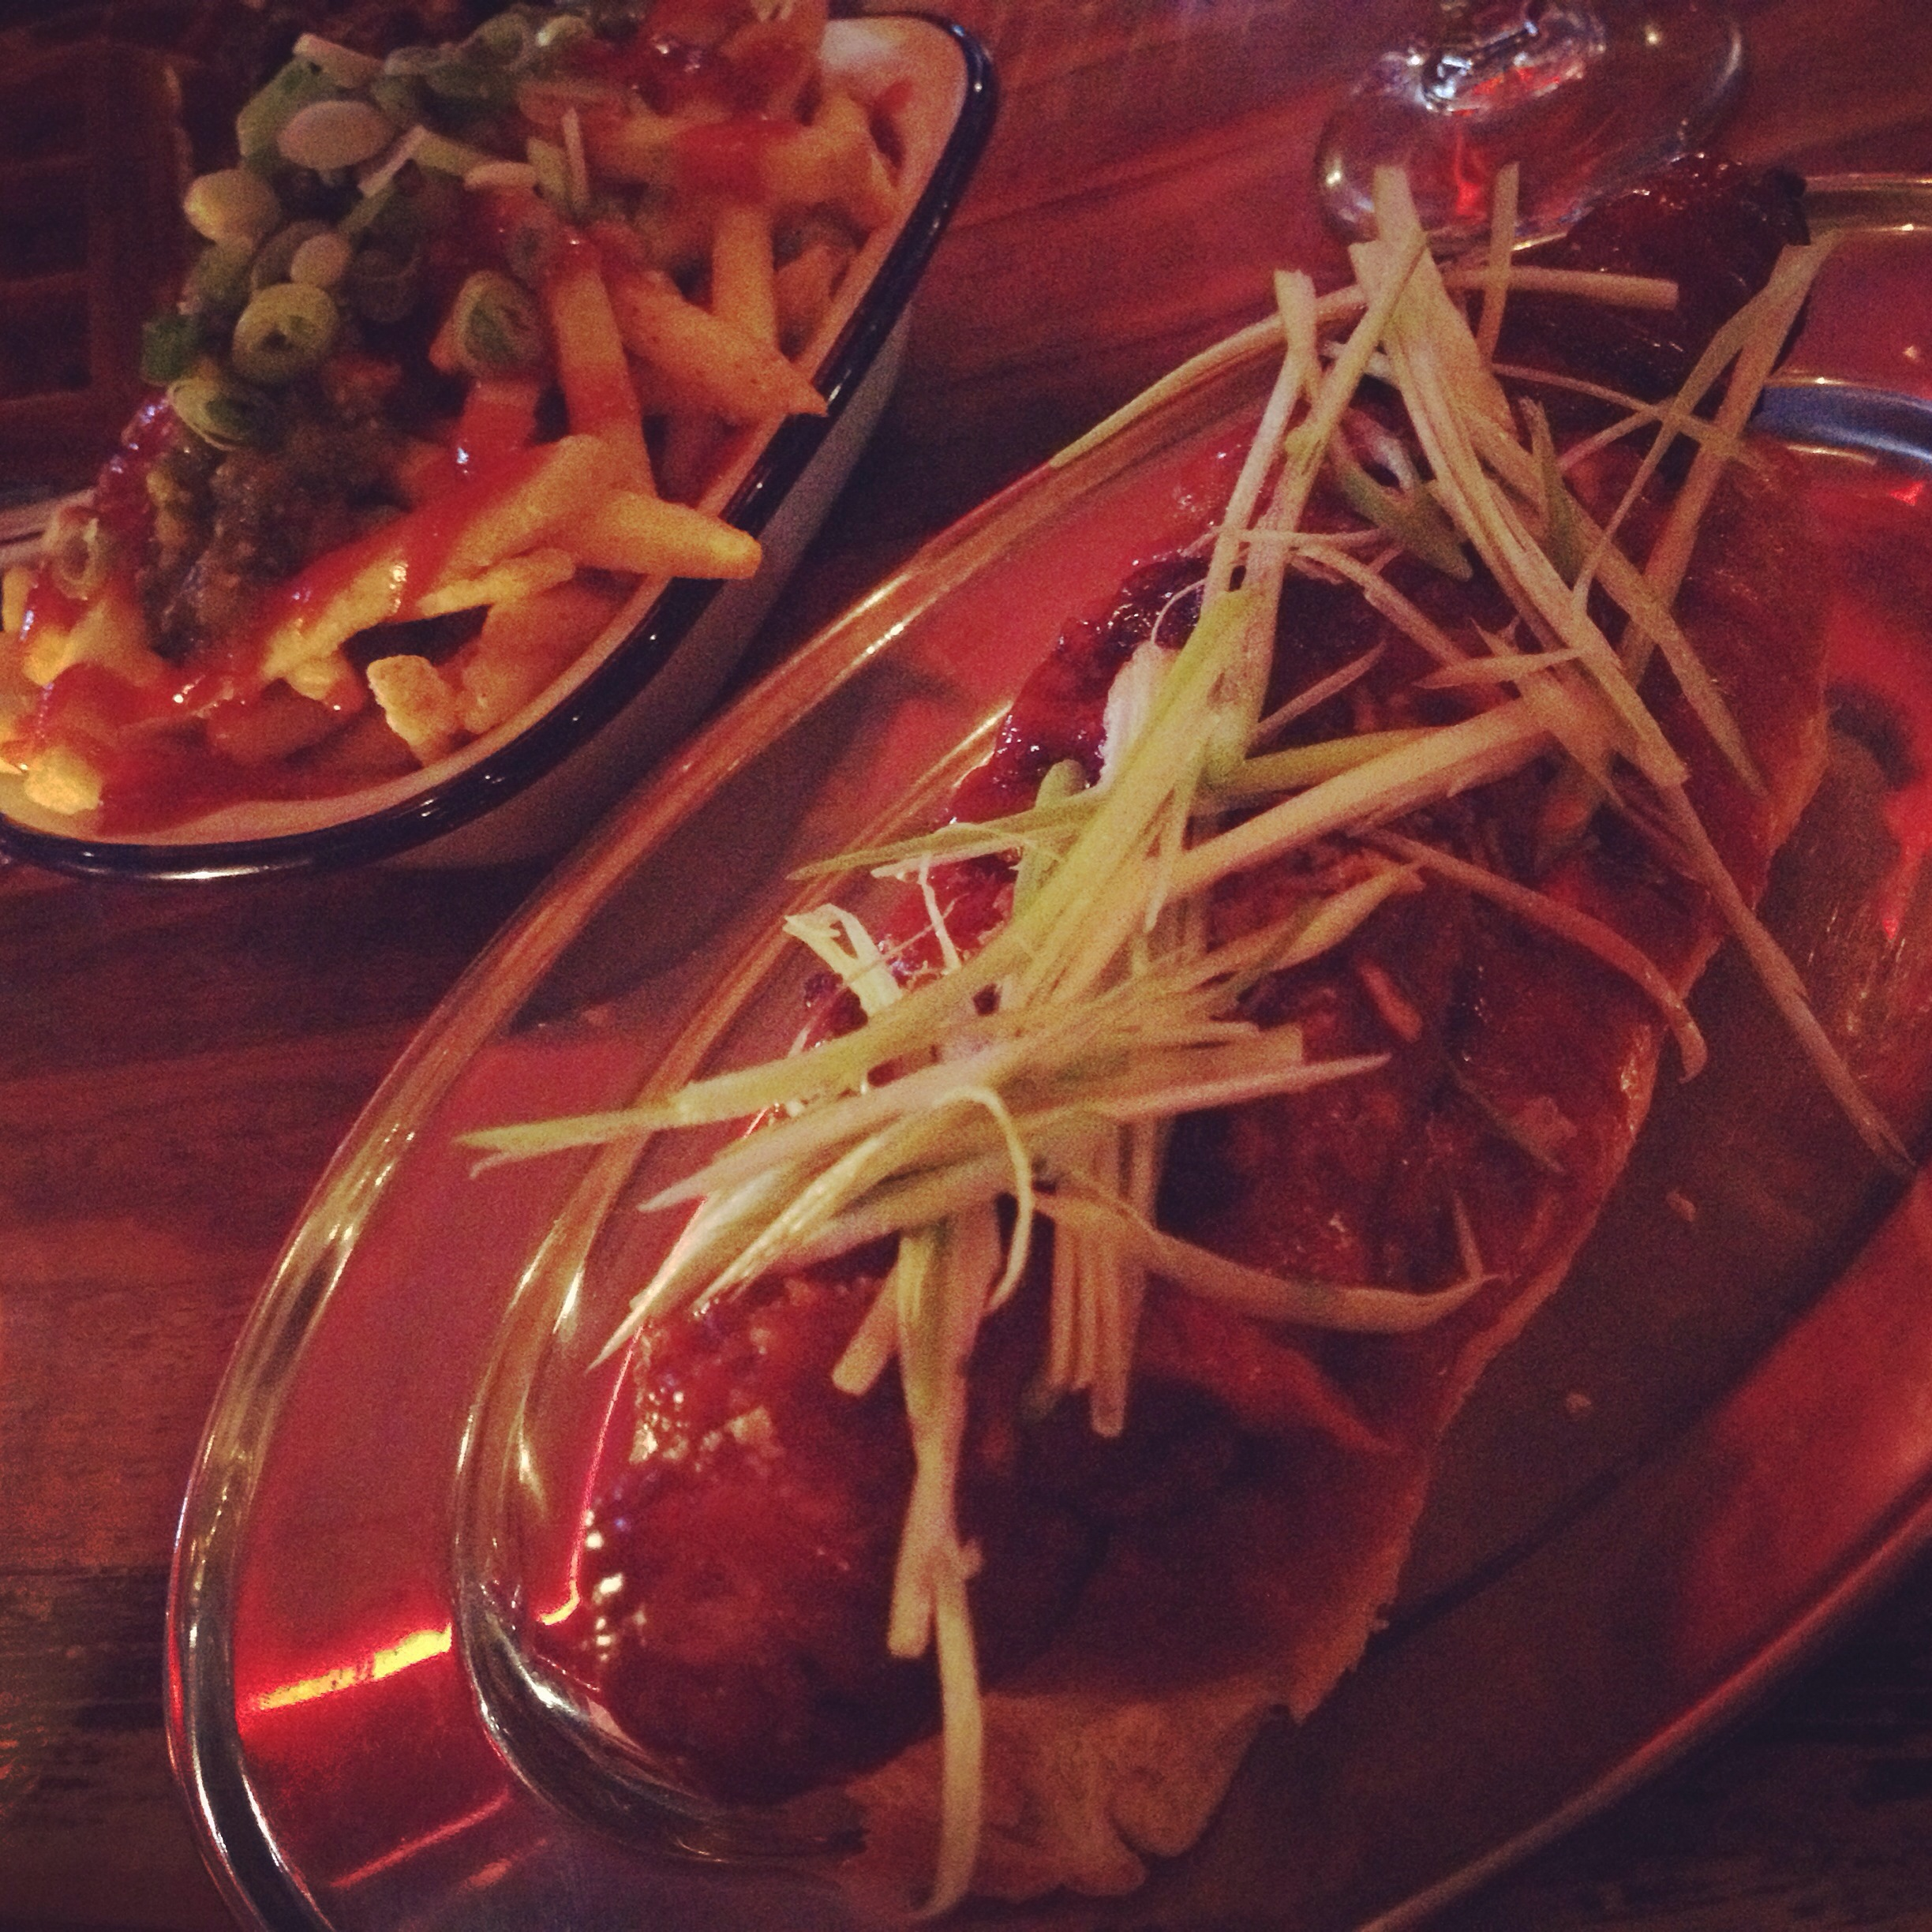 Dirty Dog & Chilli Fries - Dirty Bones Soho